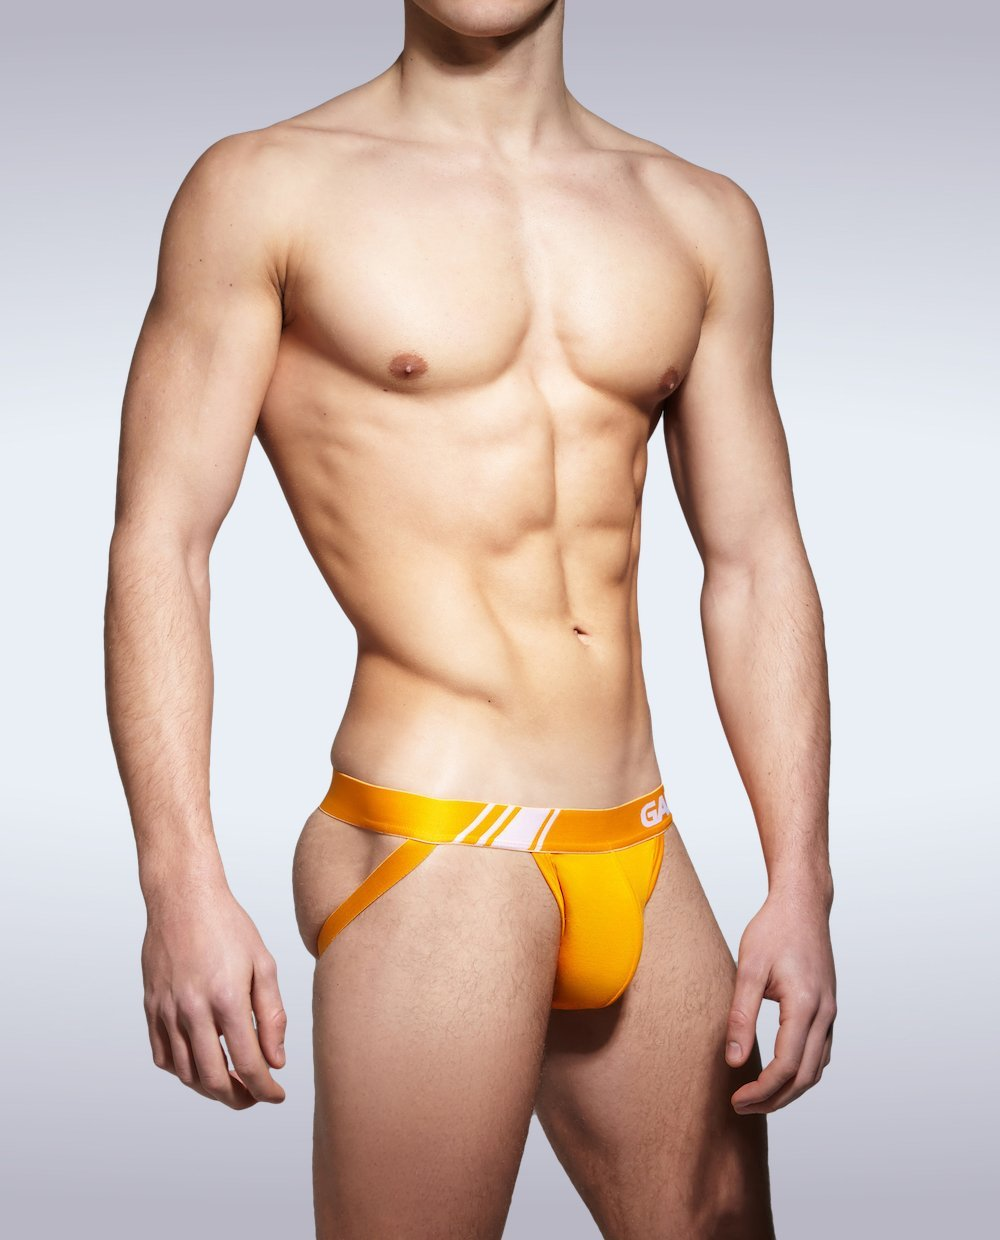 Orange Elite Sport Jocks - Garçon Underwear sexy men's underwear Jockstraps Garçon Underwear